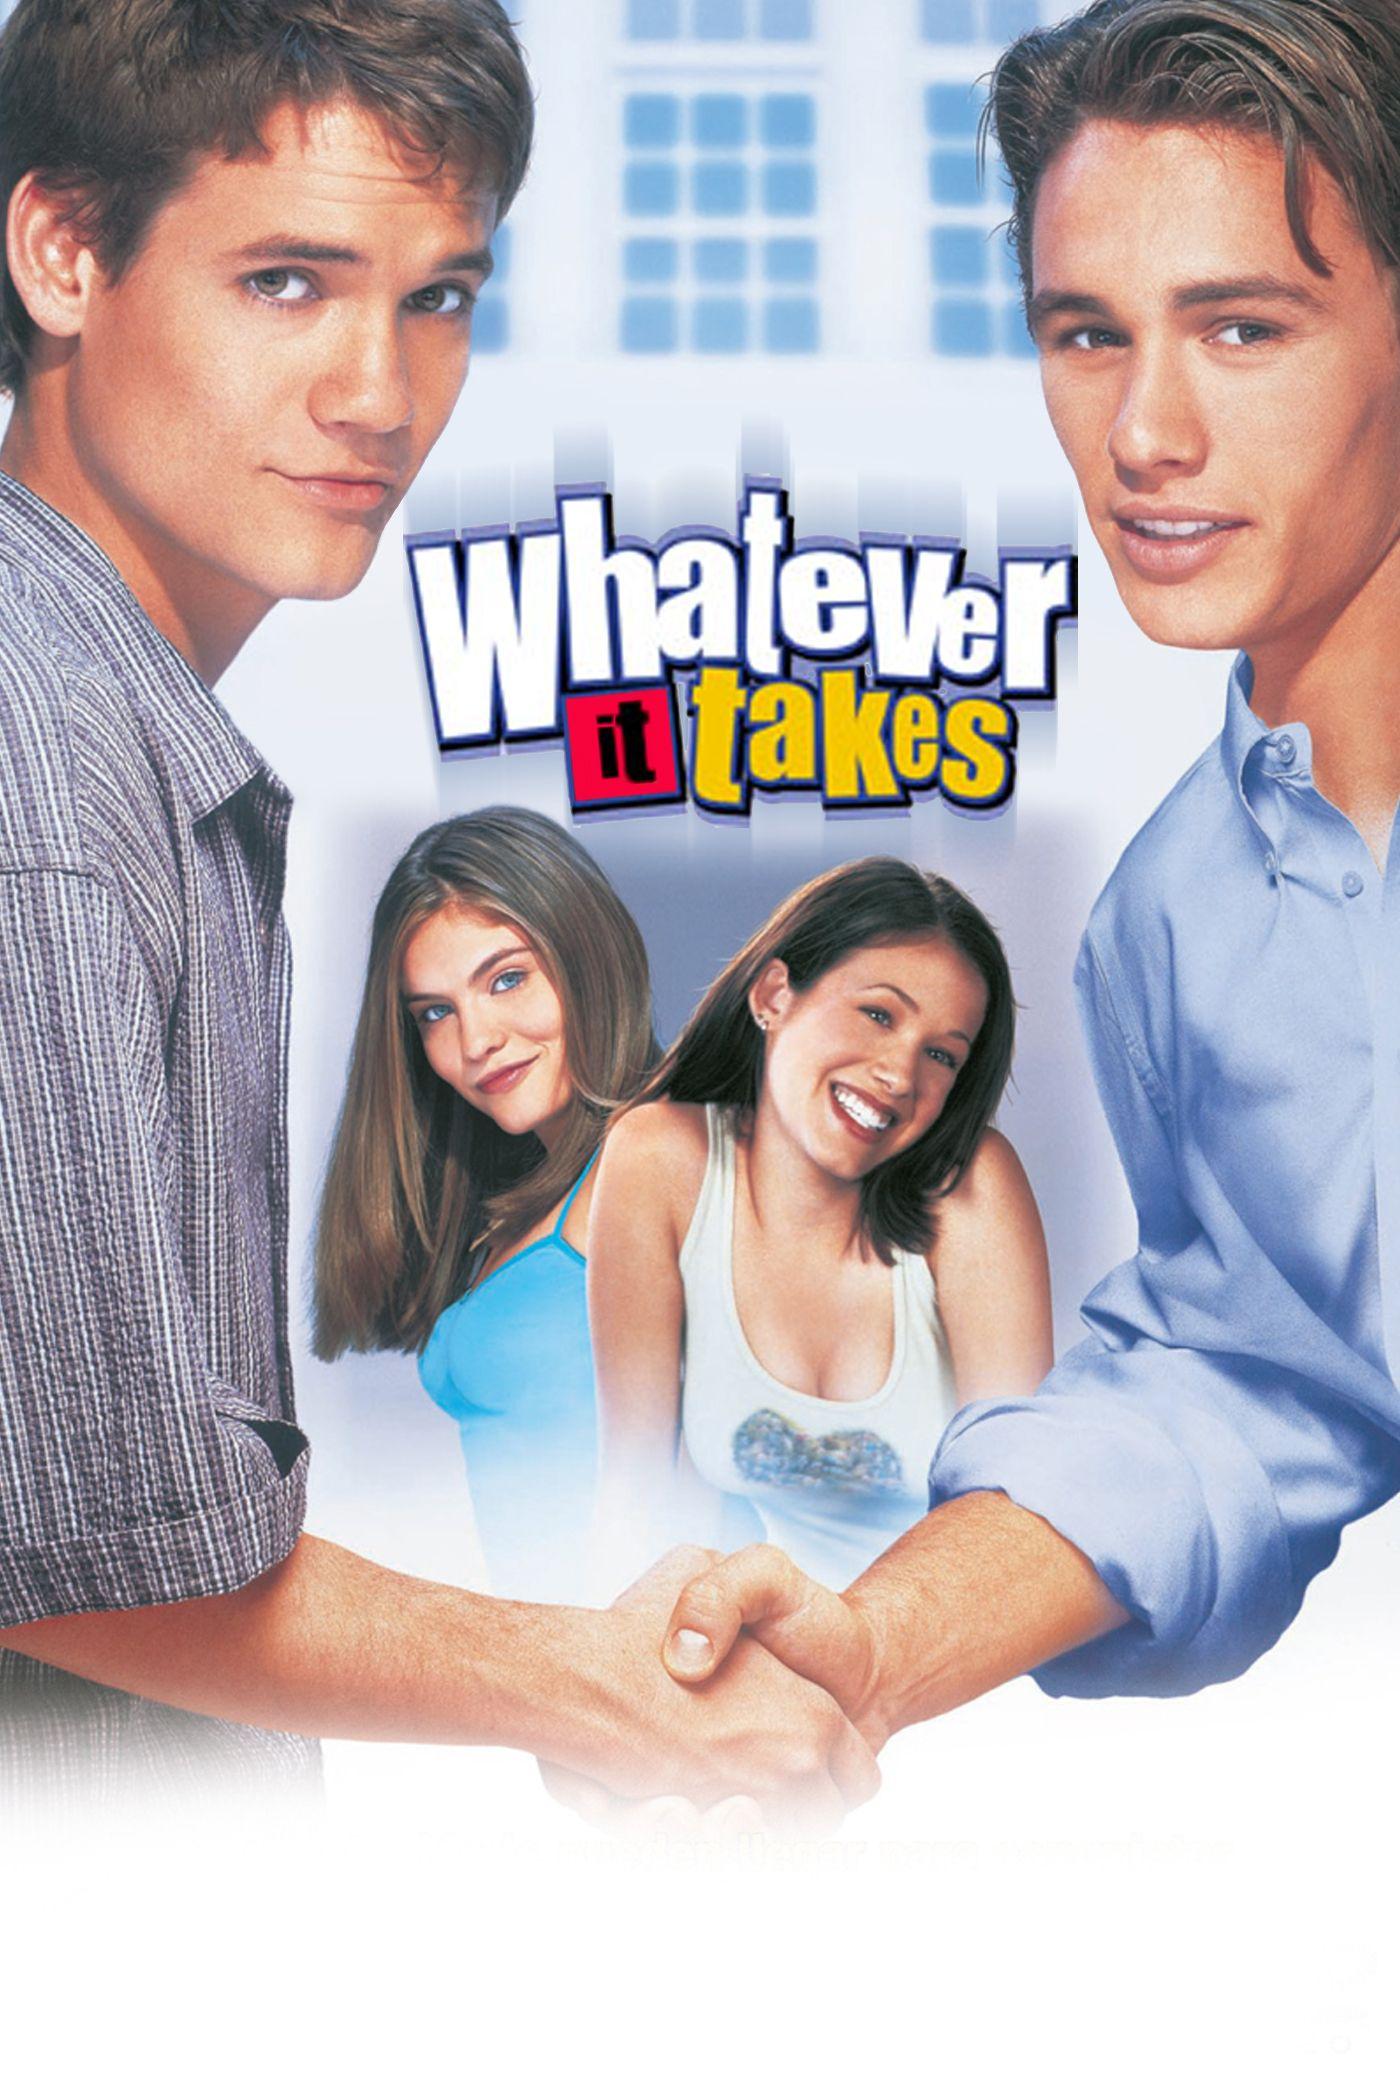 Whatever It Takes 20   Full Movie   Movies Anywhere